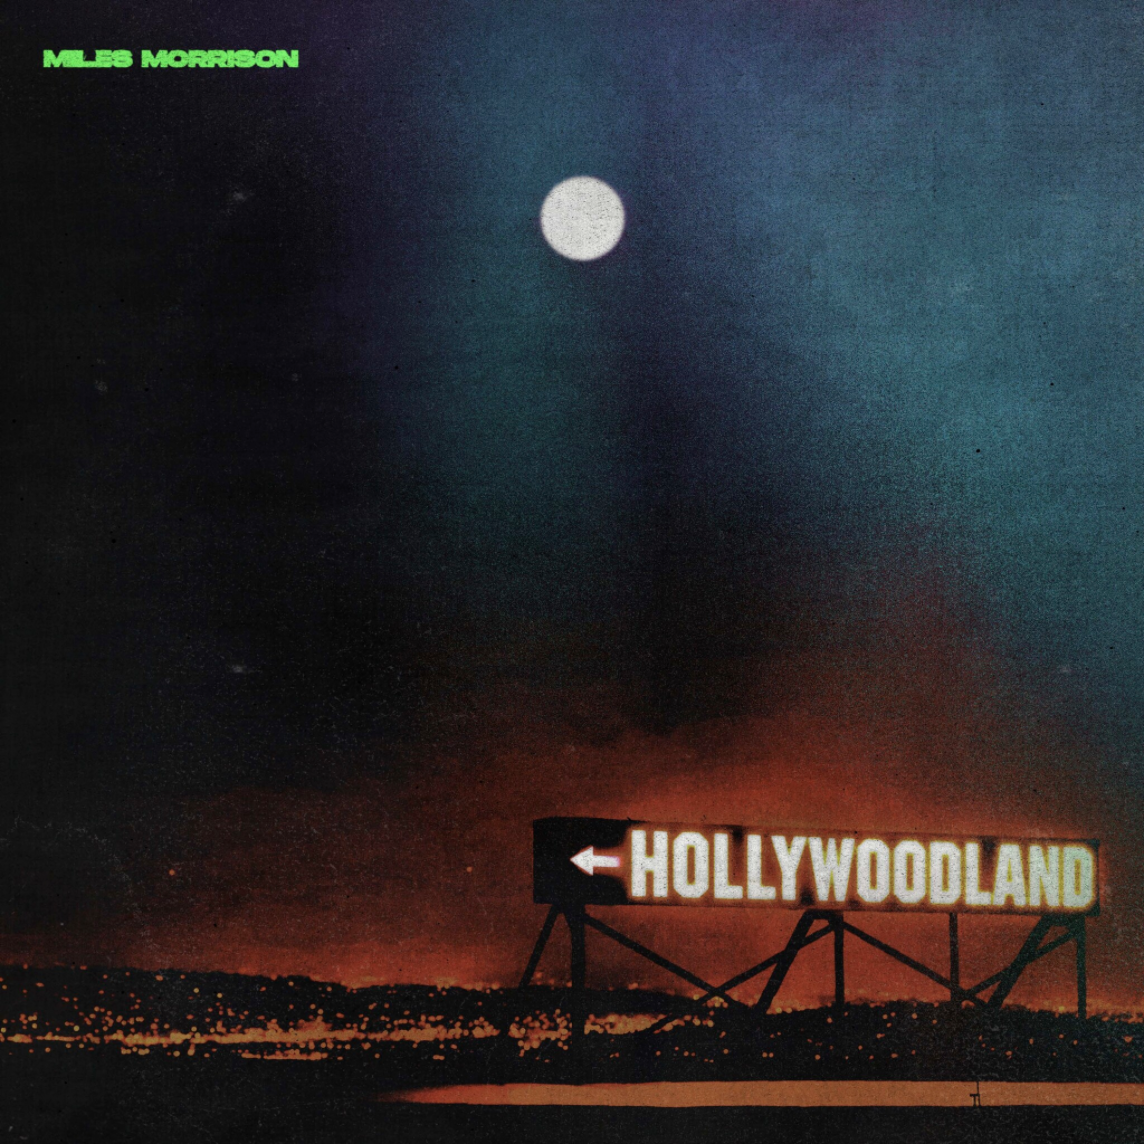 INTRODUCING: MILES MORRISON   DEBUT EP HOLLYWOODLAND OUT NOW